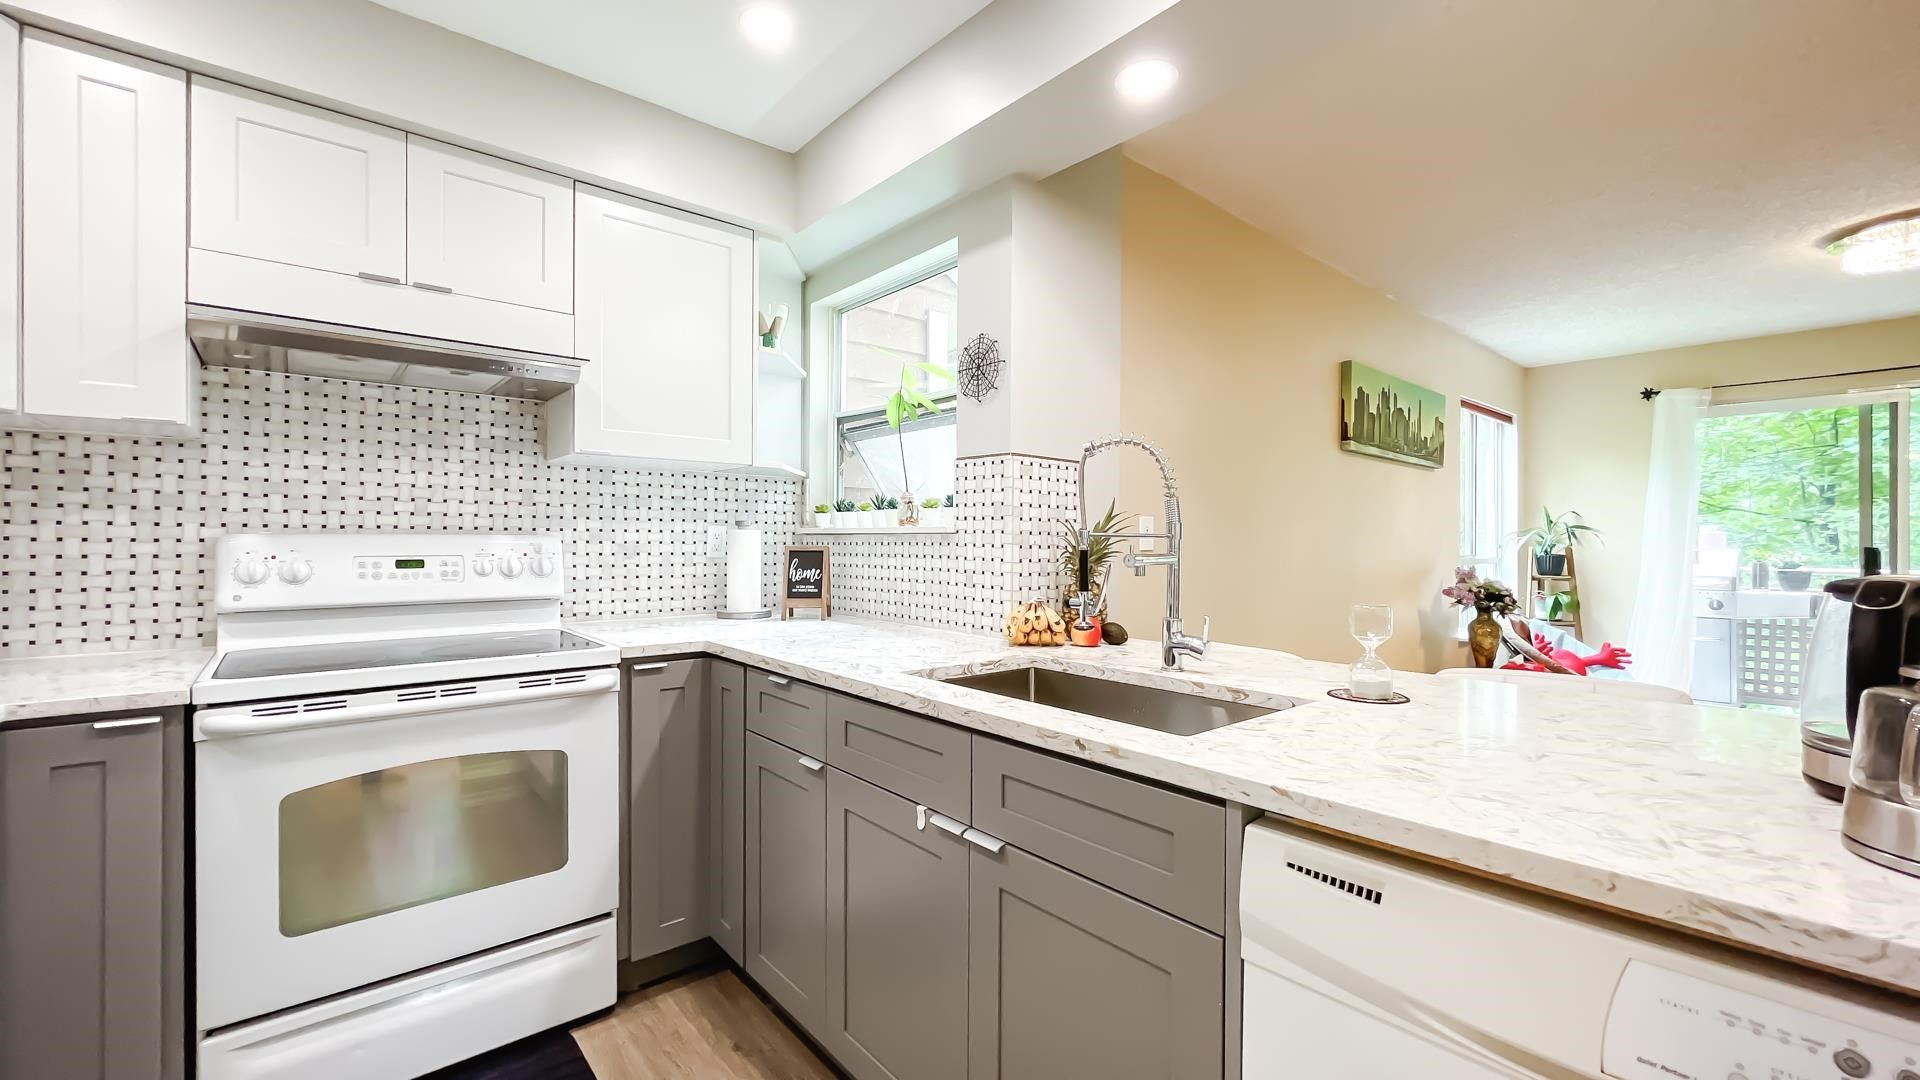 Photo 9: Photos: 66 9000 ASH GROVE CRESCENT in Burnaby: Forest Hills BN Townhouse for sale (Burnaby North)  : MLS®# R2603744